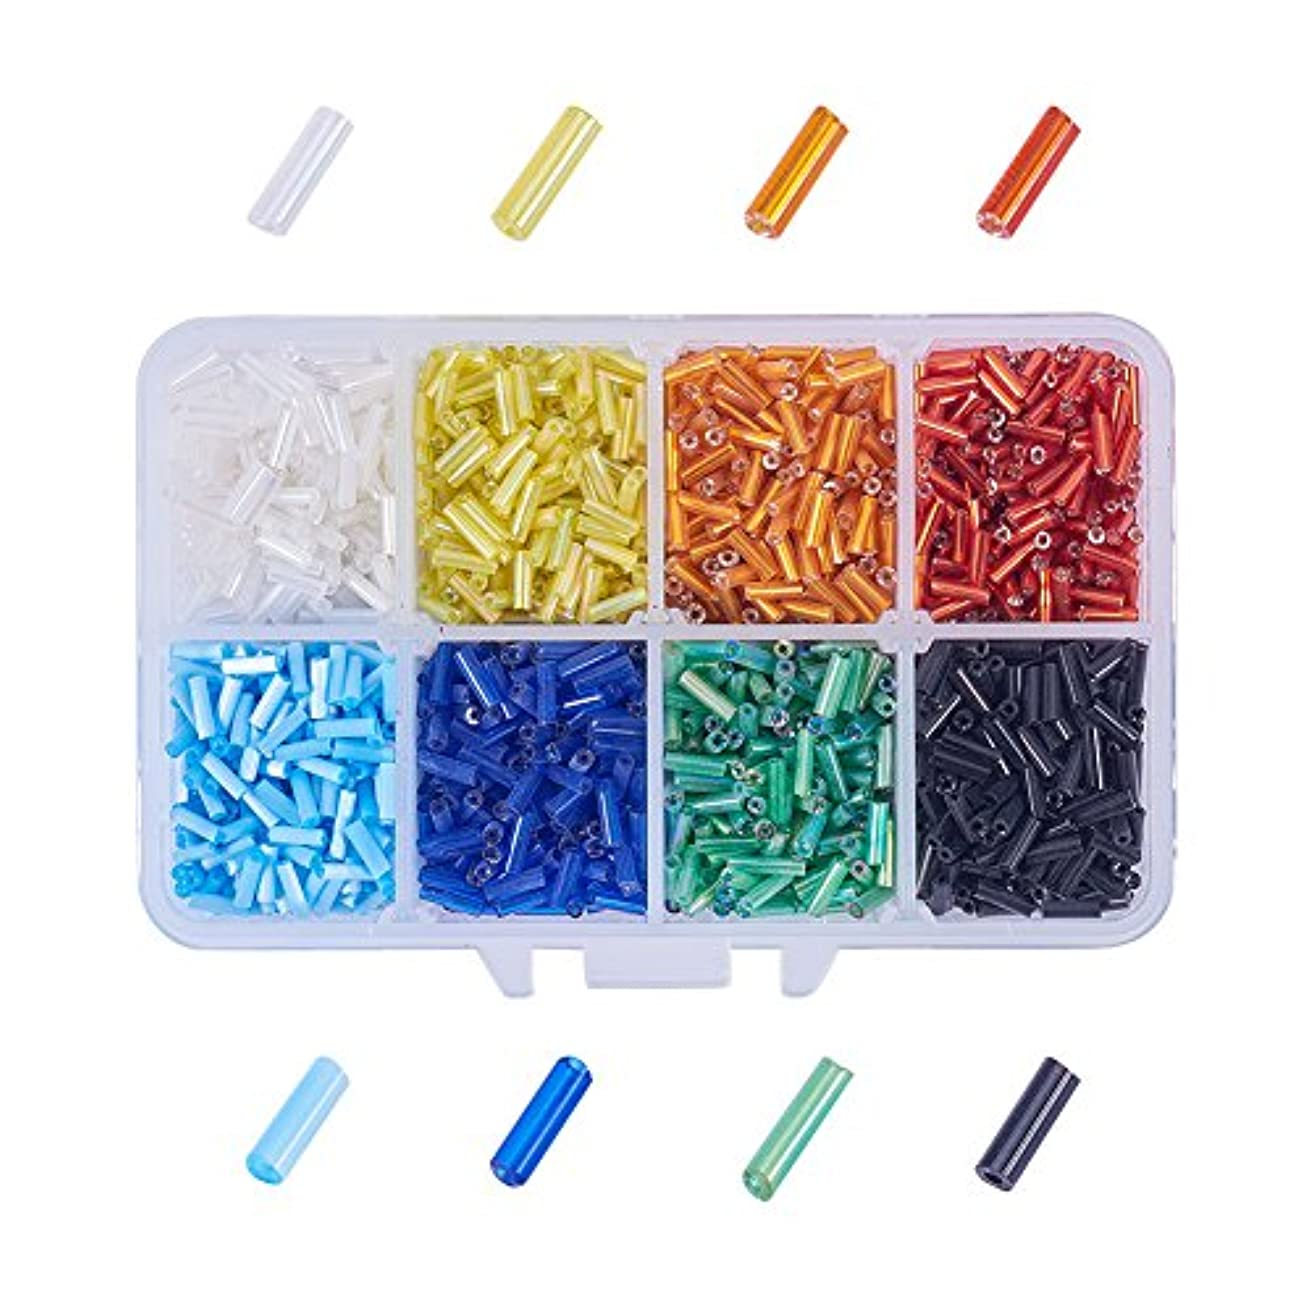 PandaHall Elite about 3500 Pcs Transparent Glass Bugle Seed Beads 8 Colors Tube Space Bead Length 6mm for Jewelry Making